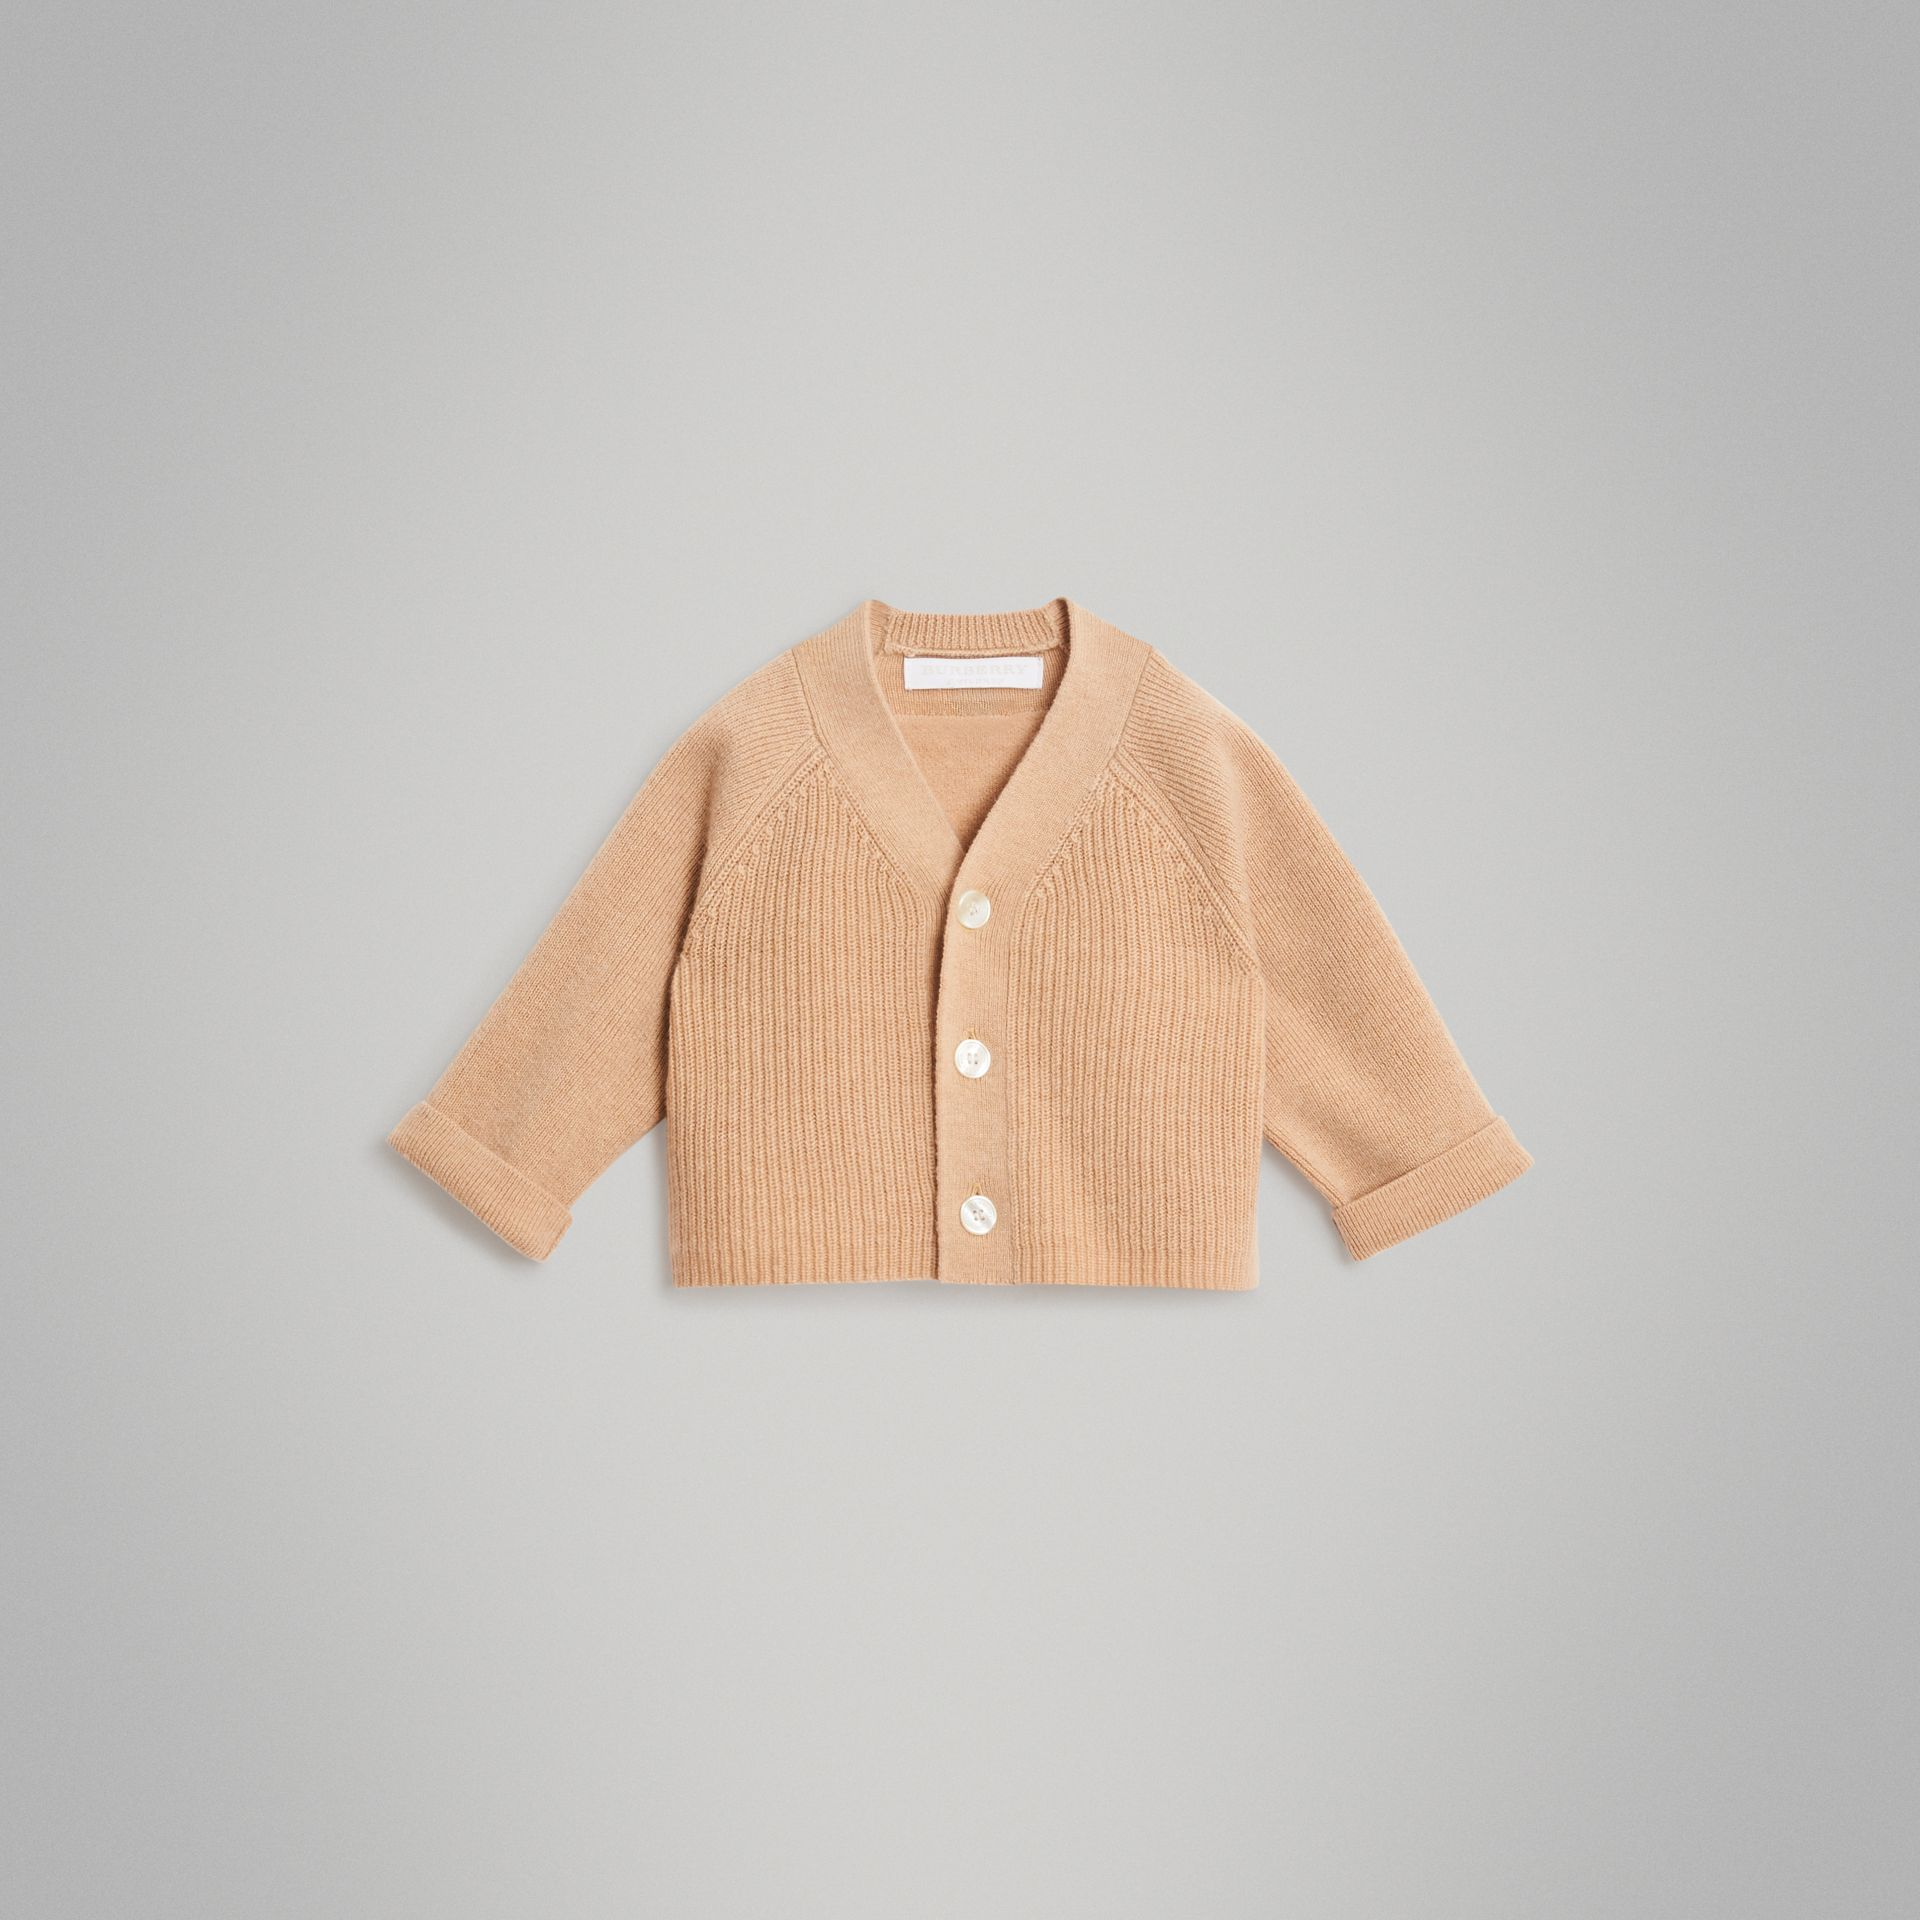 Cashmere Cotton Knit Cardigan in Peach - Children | Burberry - gallery image 0